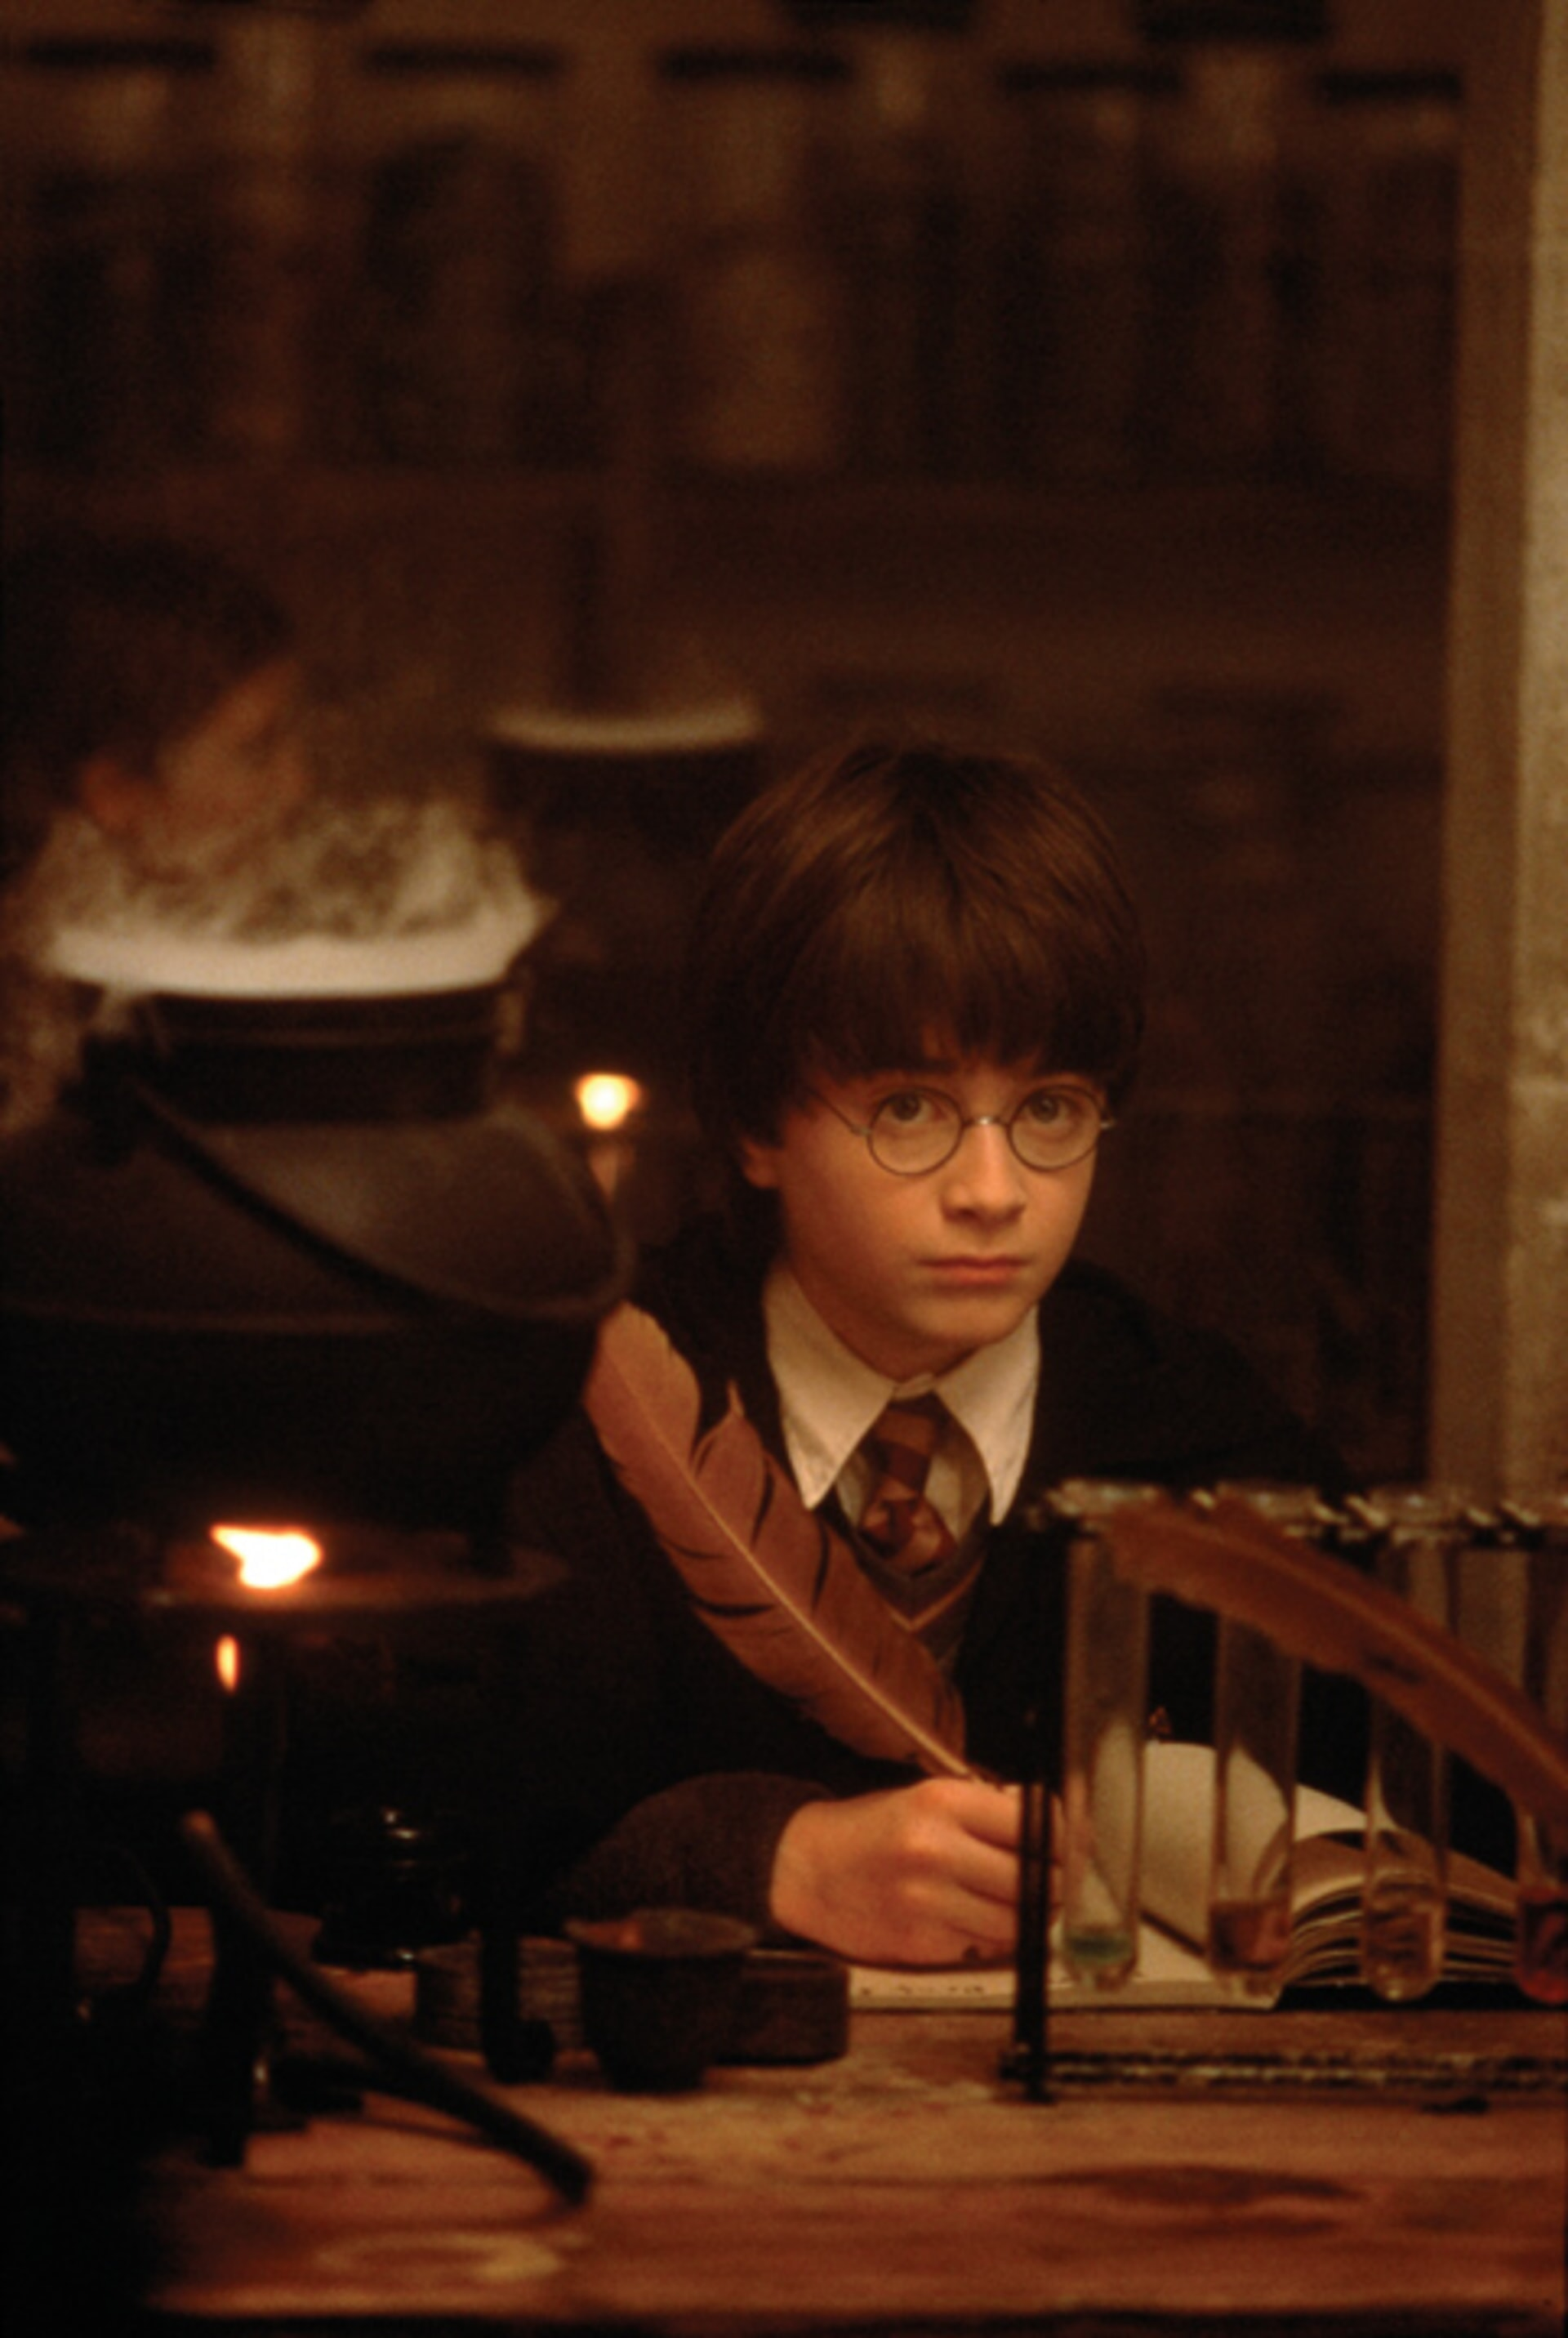 Harry Potter and the Philosopher's Stone - Image 7